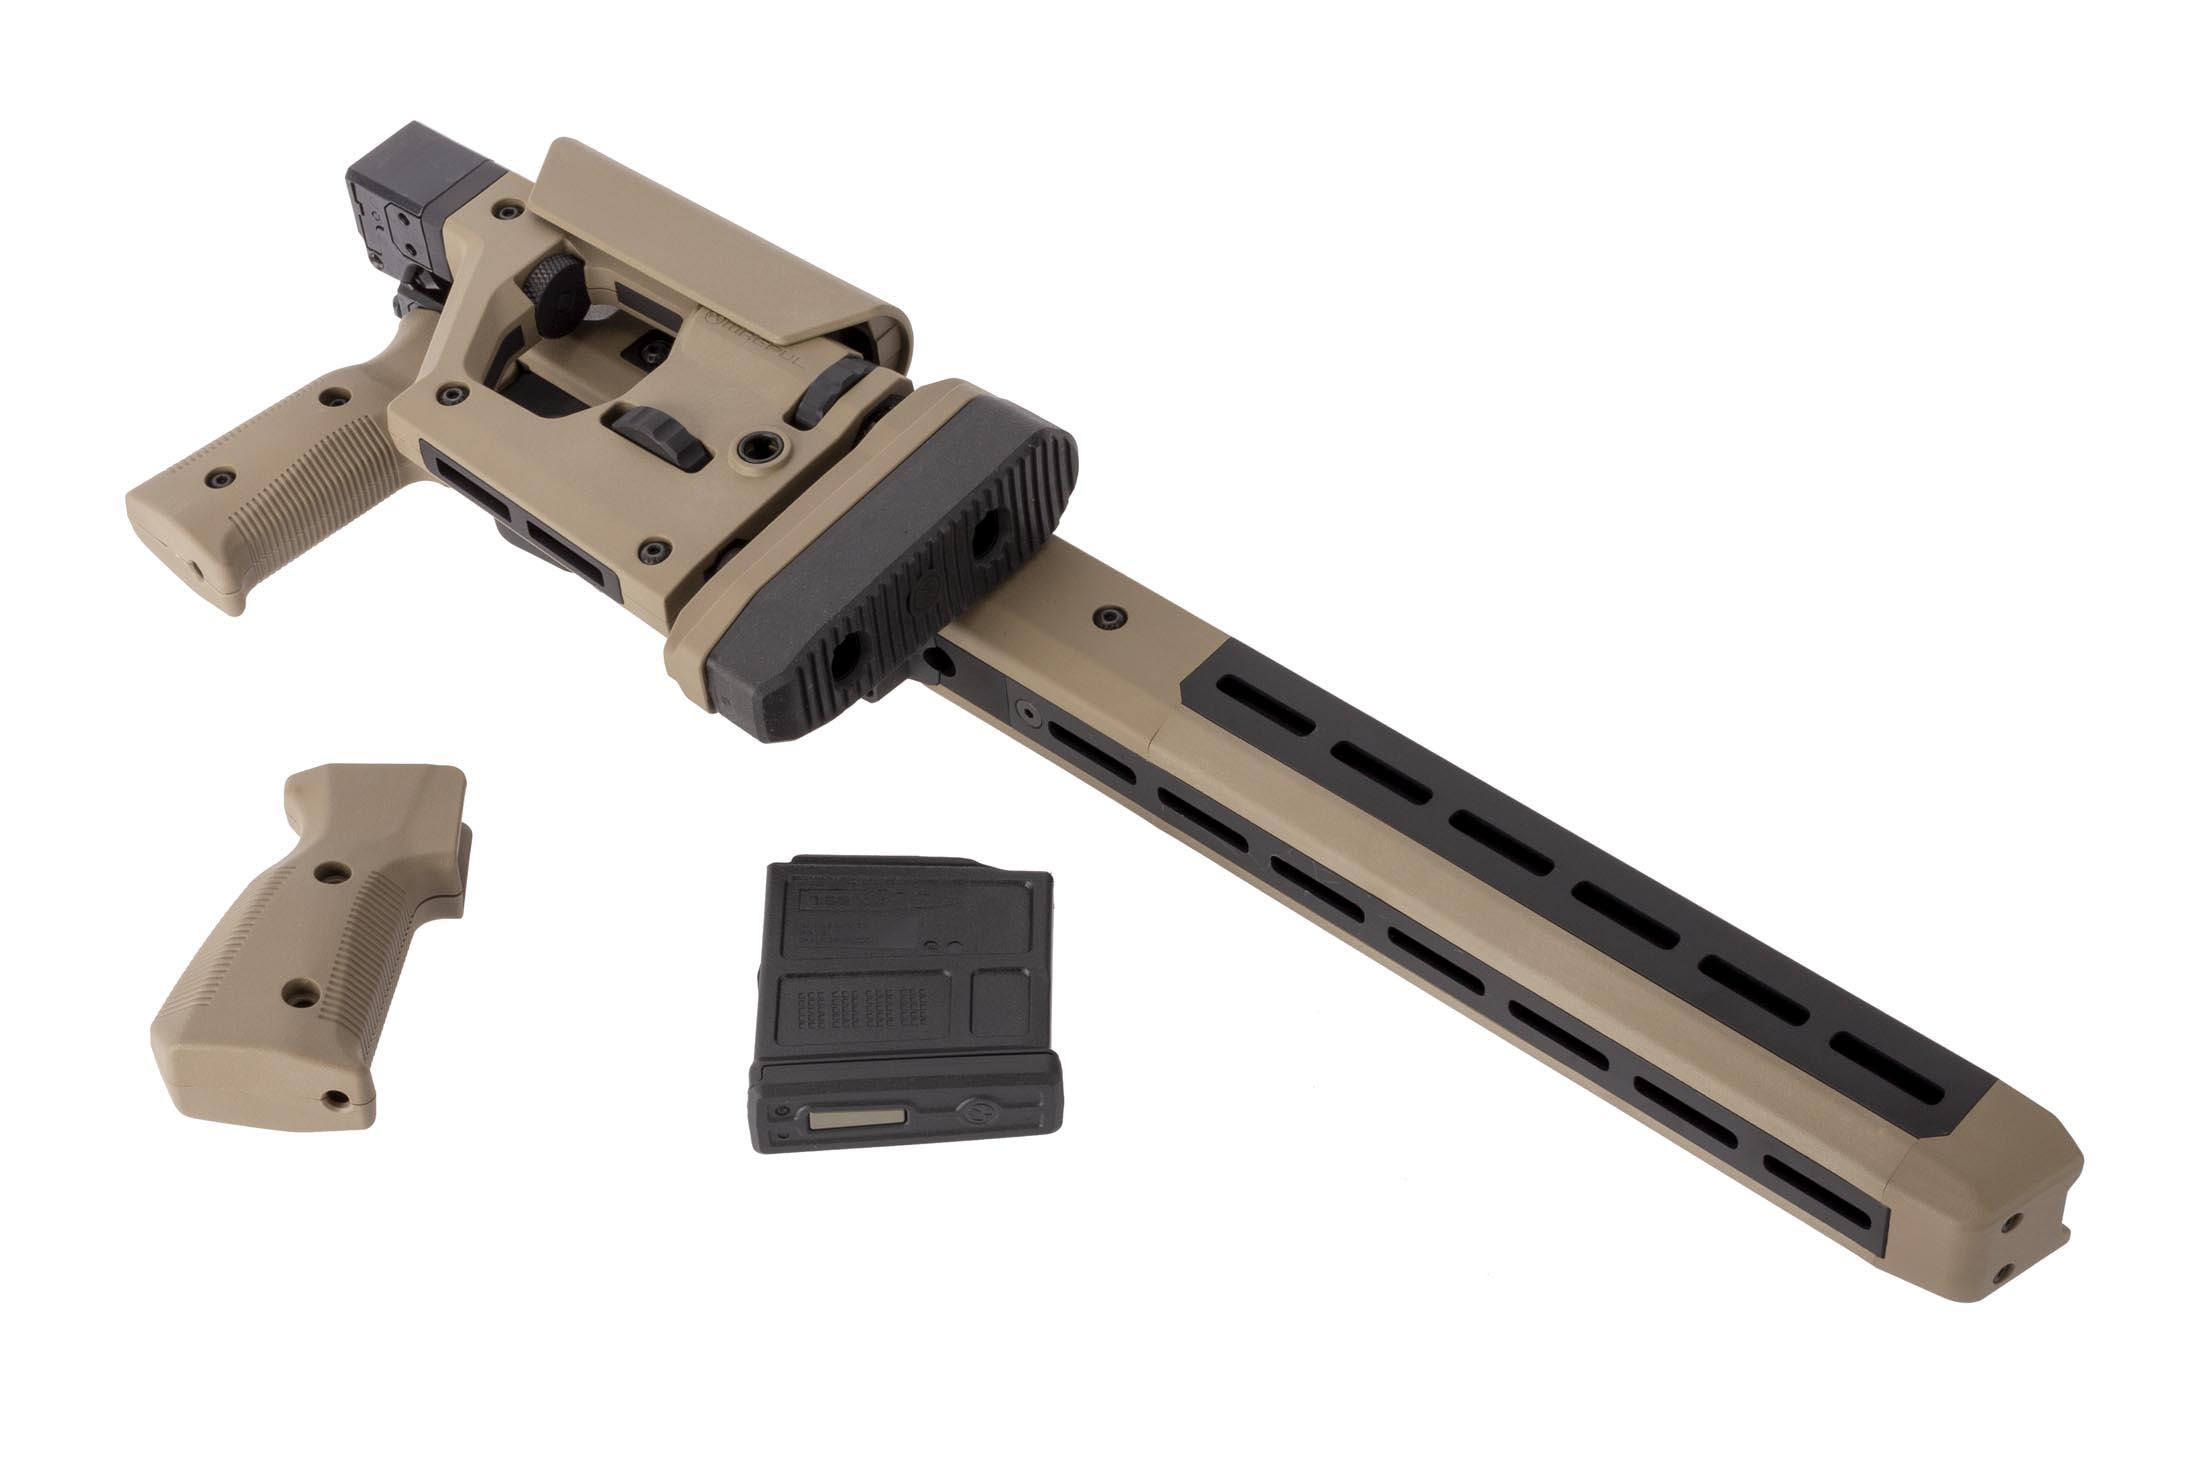 Magpul FDE Pro 700 Remington 700 short action rifle chassis is M-LOK compatible, includes an alternate grip, and a 5 round AICS mag.